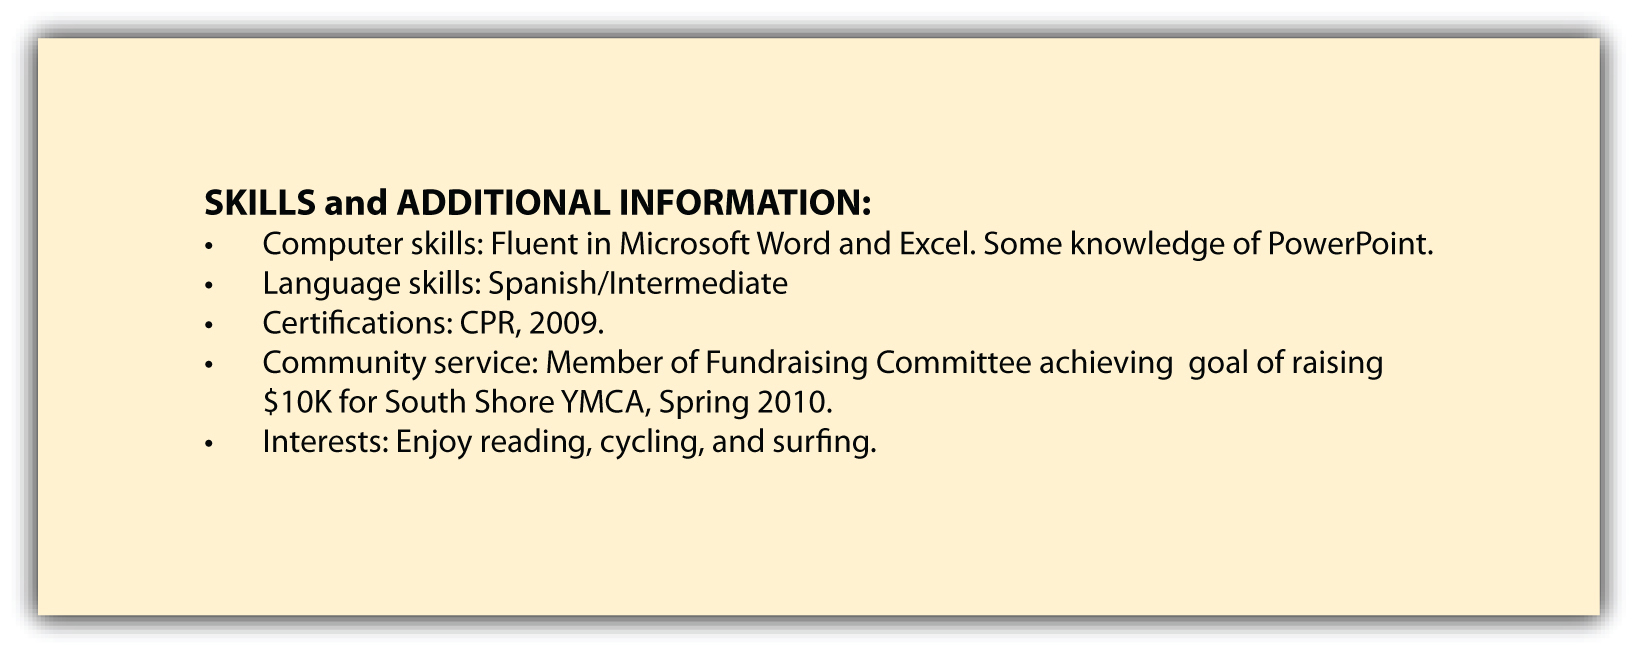 Skills And Additional Information  Resume Skills And Qualifications Examples